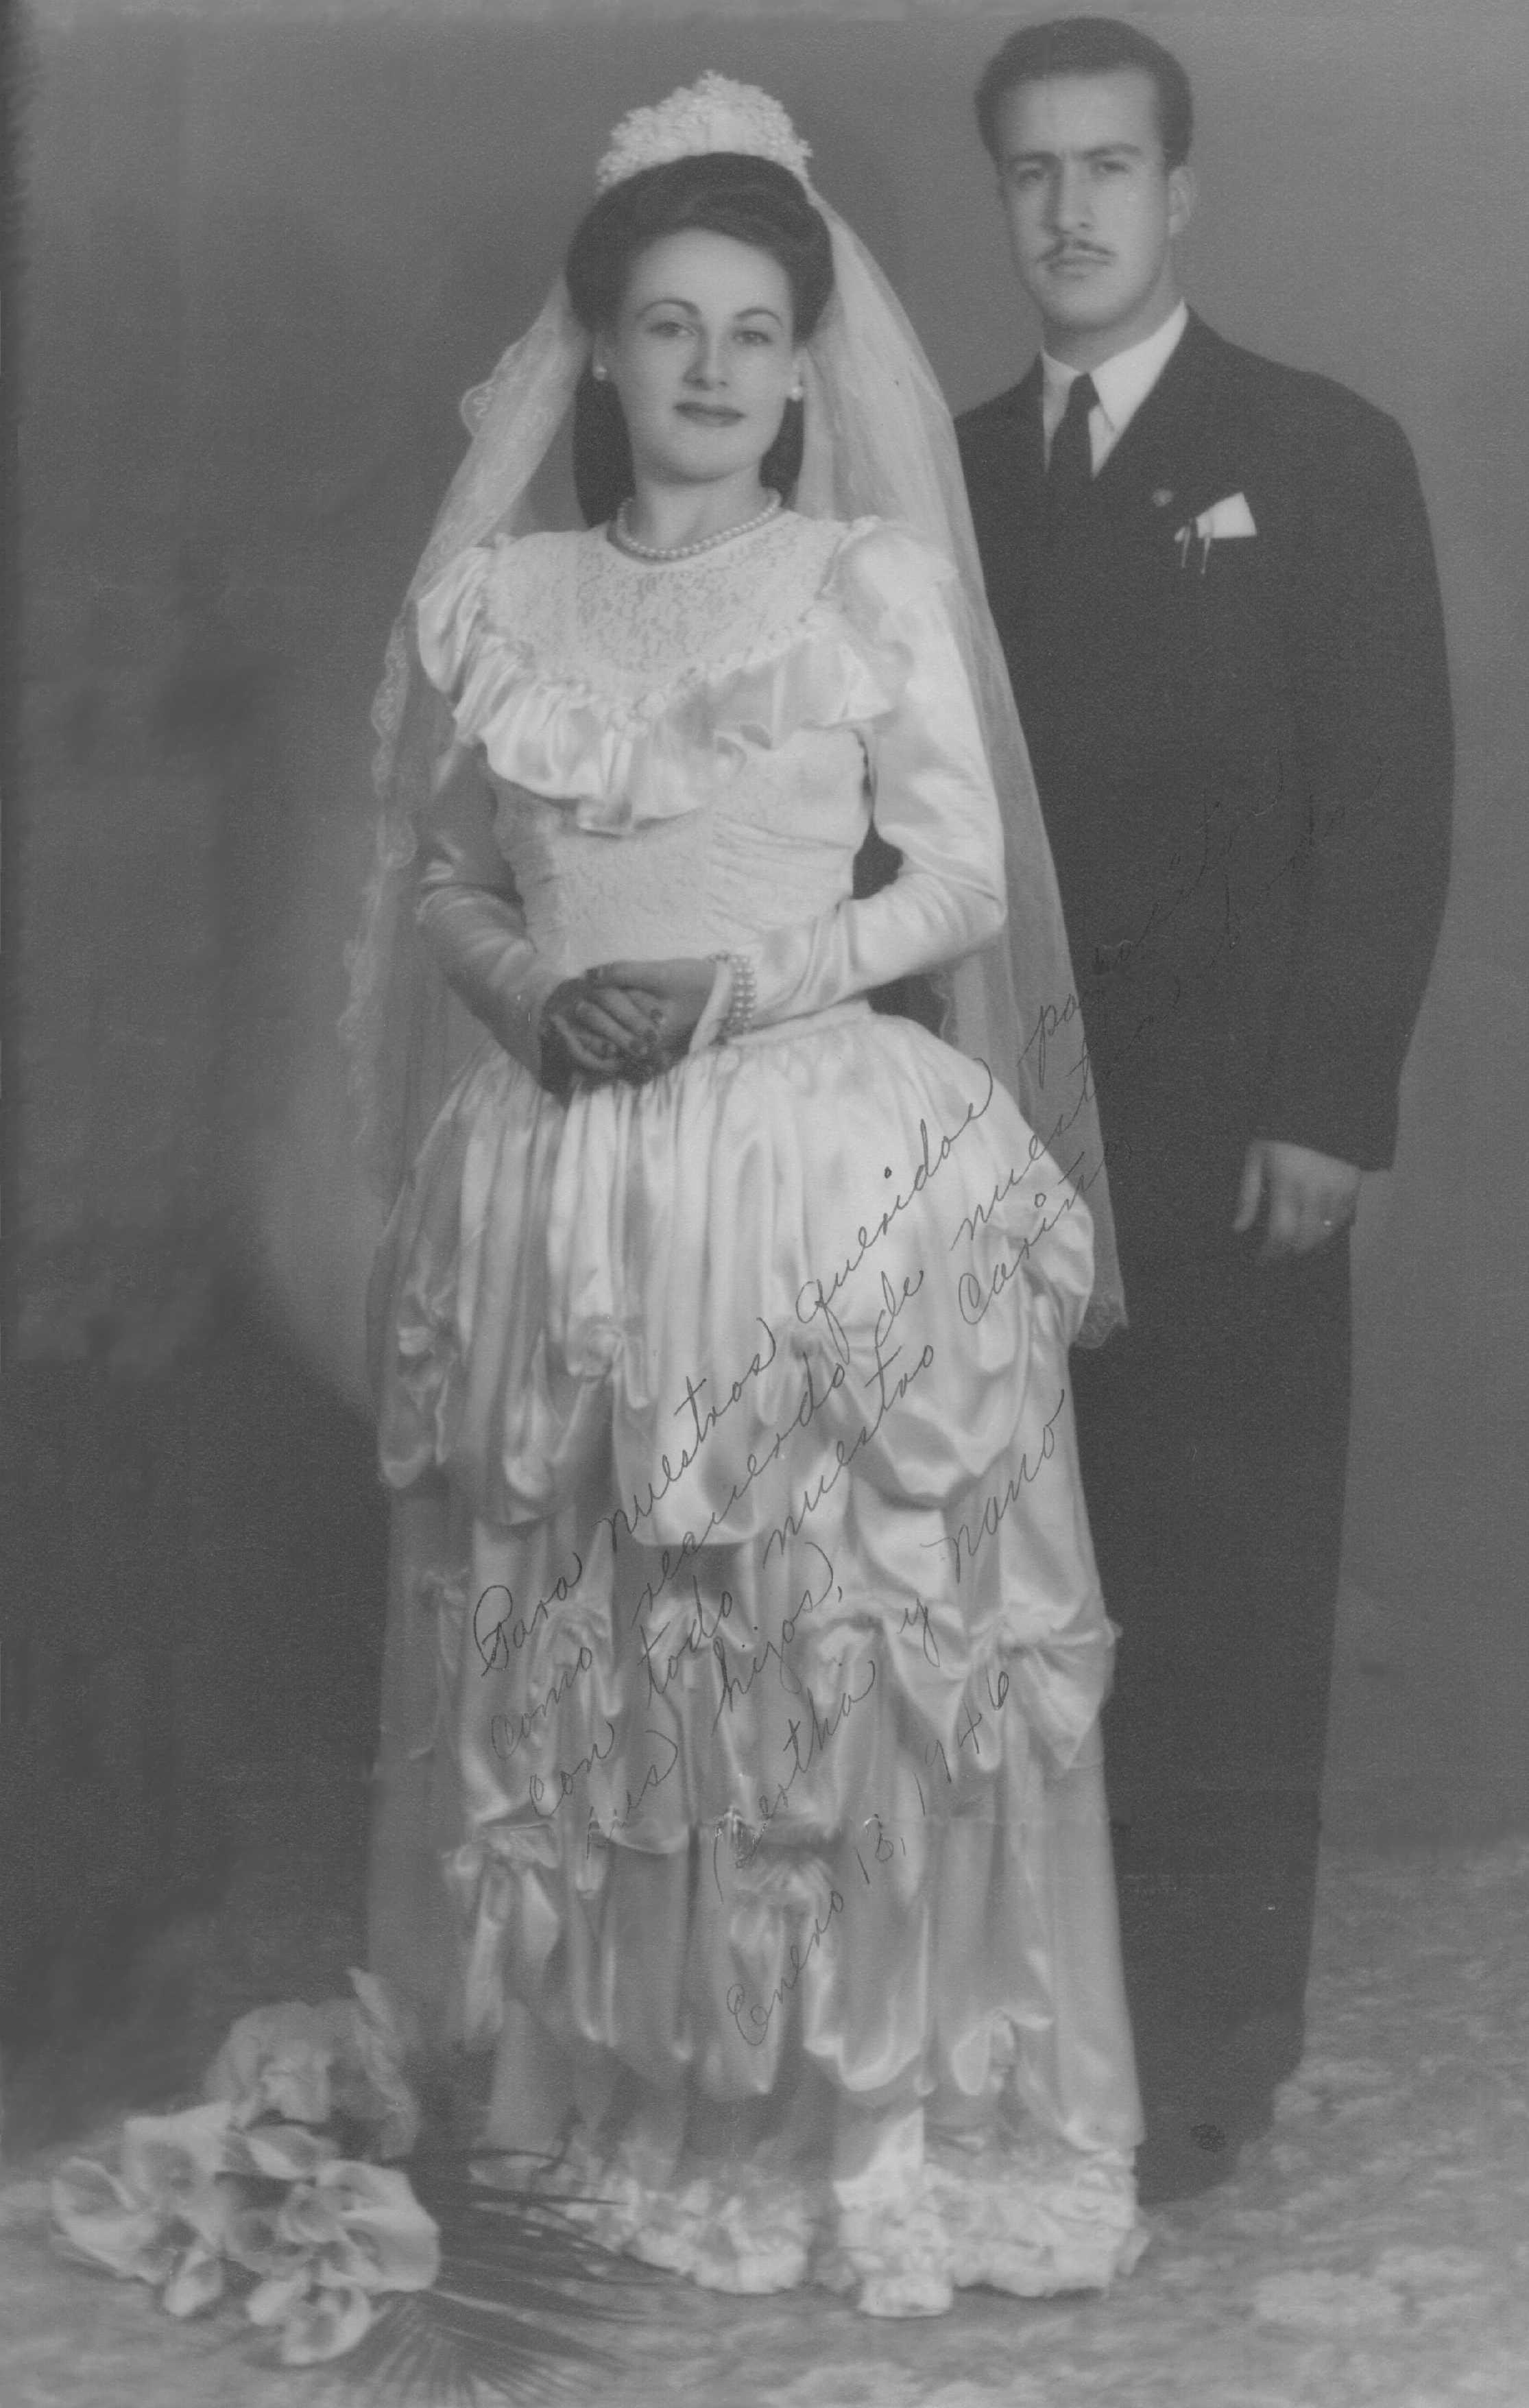 Bertha Brown and Everardo Navas wedding portrait January 18, 1946